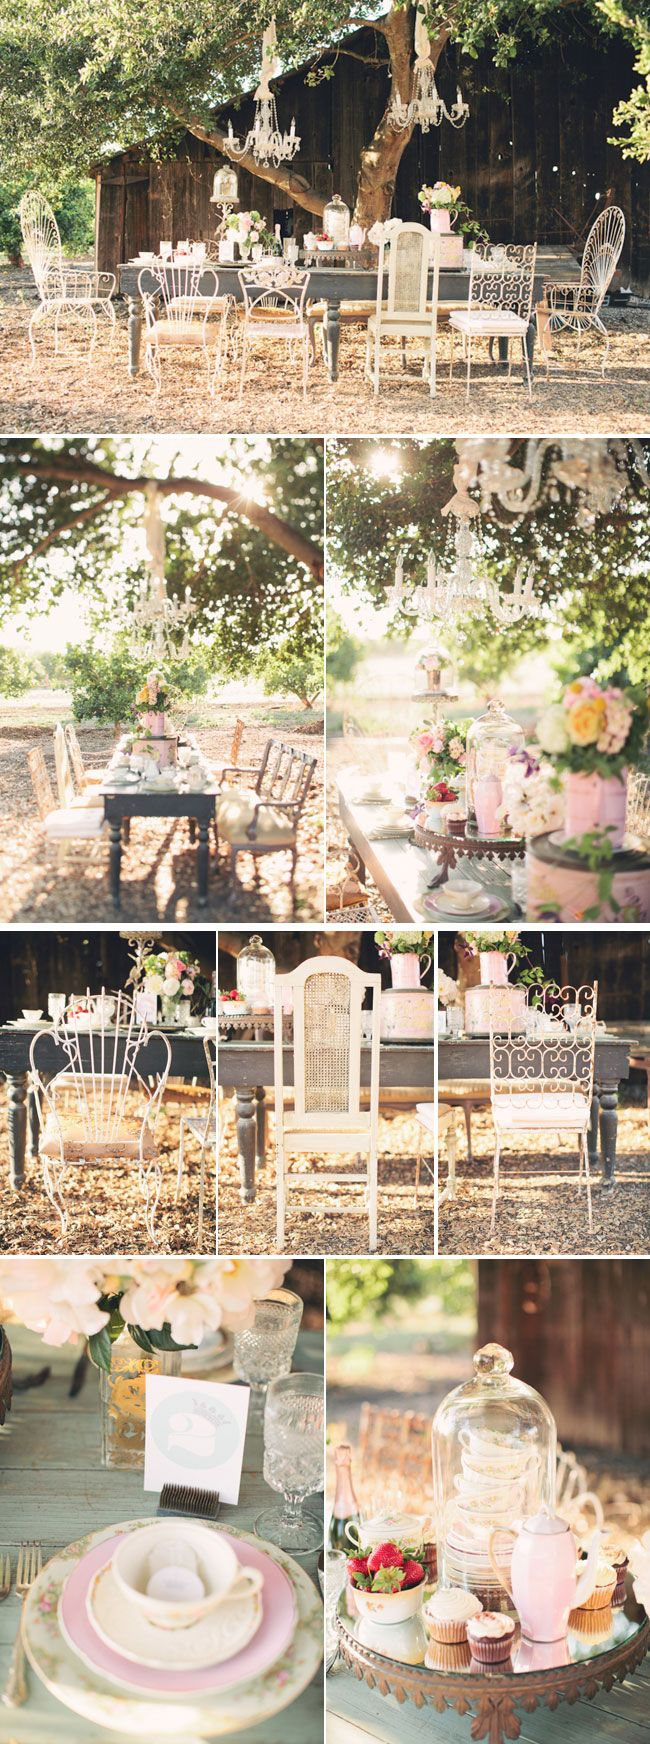 Barn wedding table settings  outside afternoon tea party  love to do this itus a fantasy setting